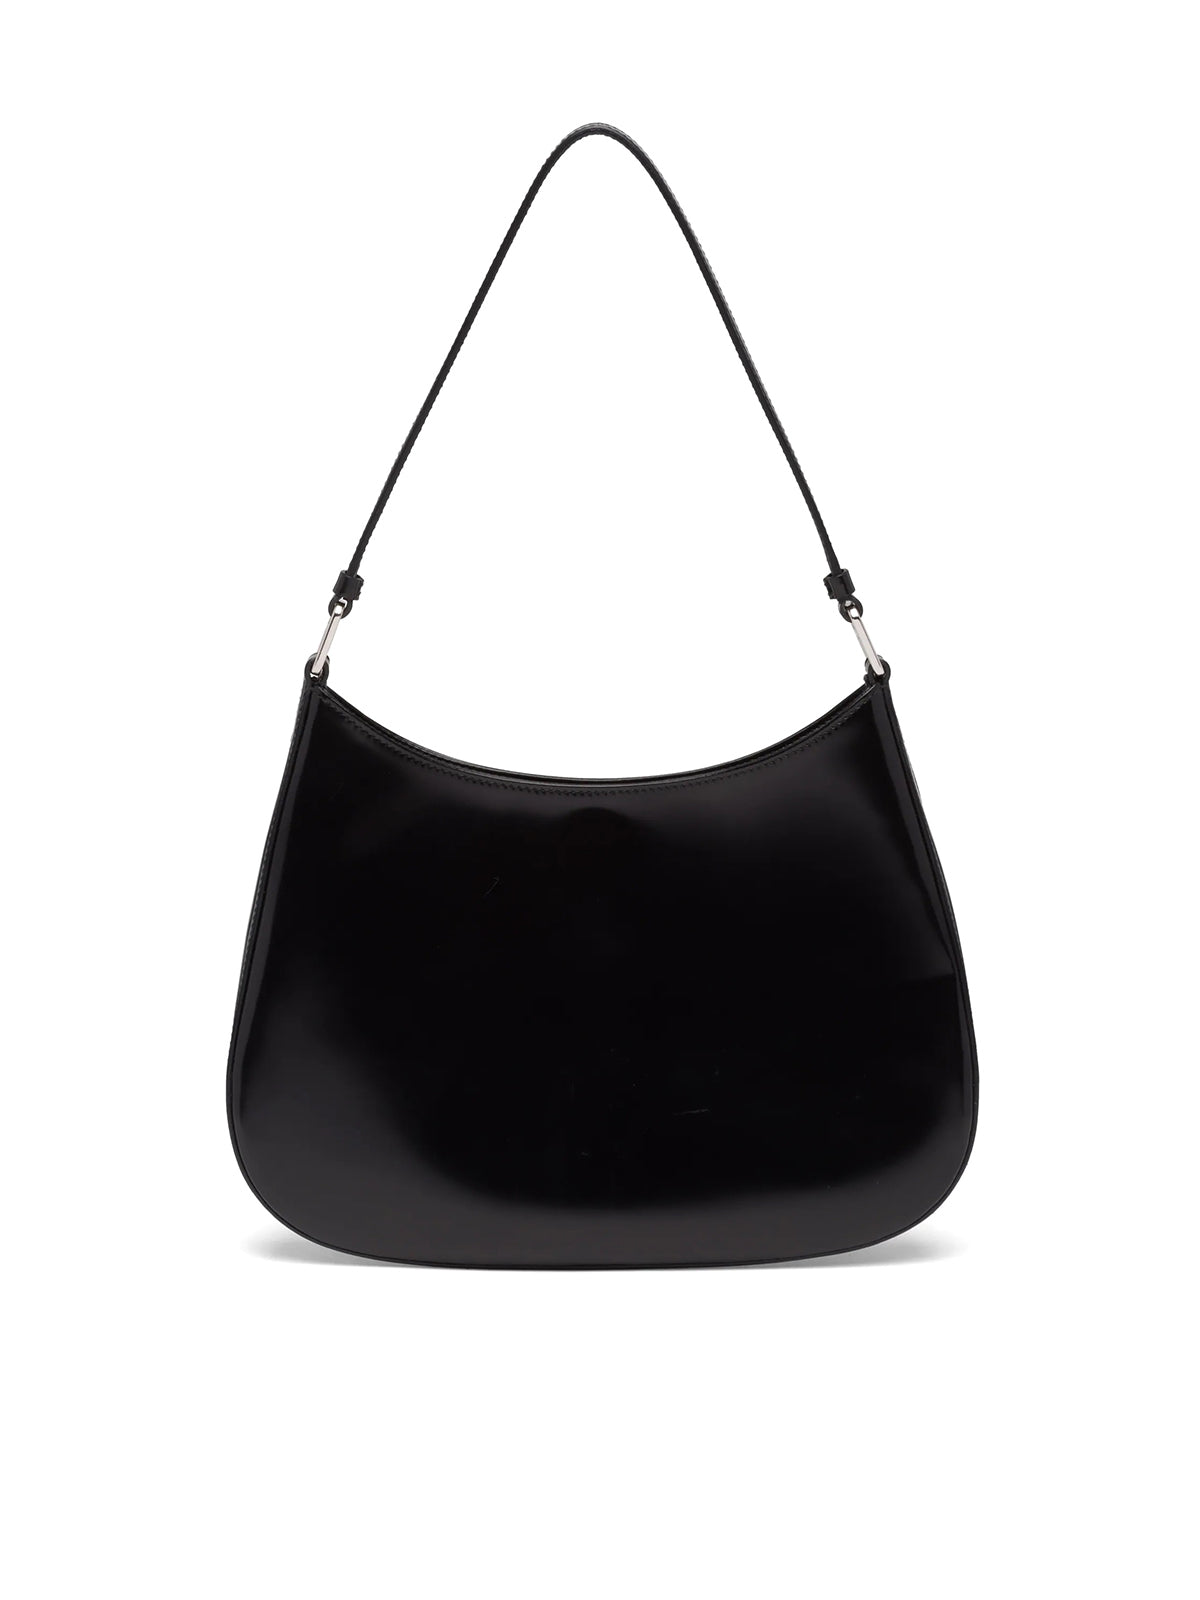 Prada Cleo brushed leather shoulder bag